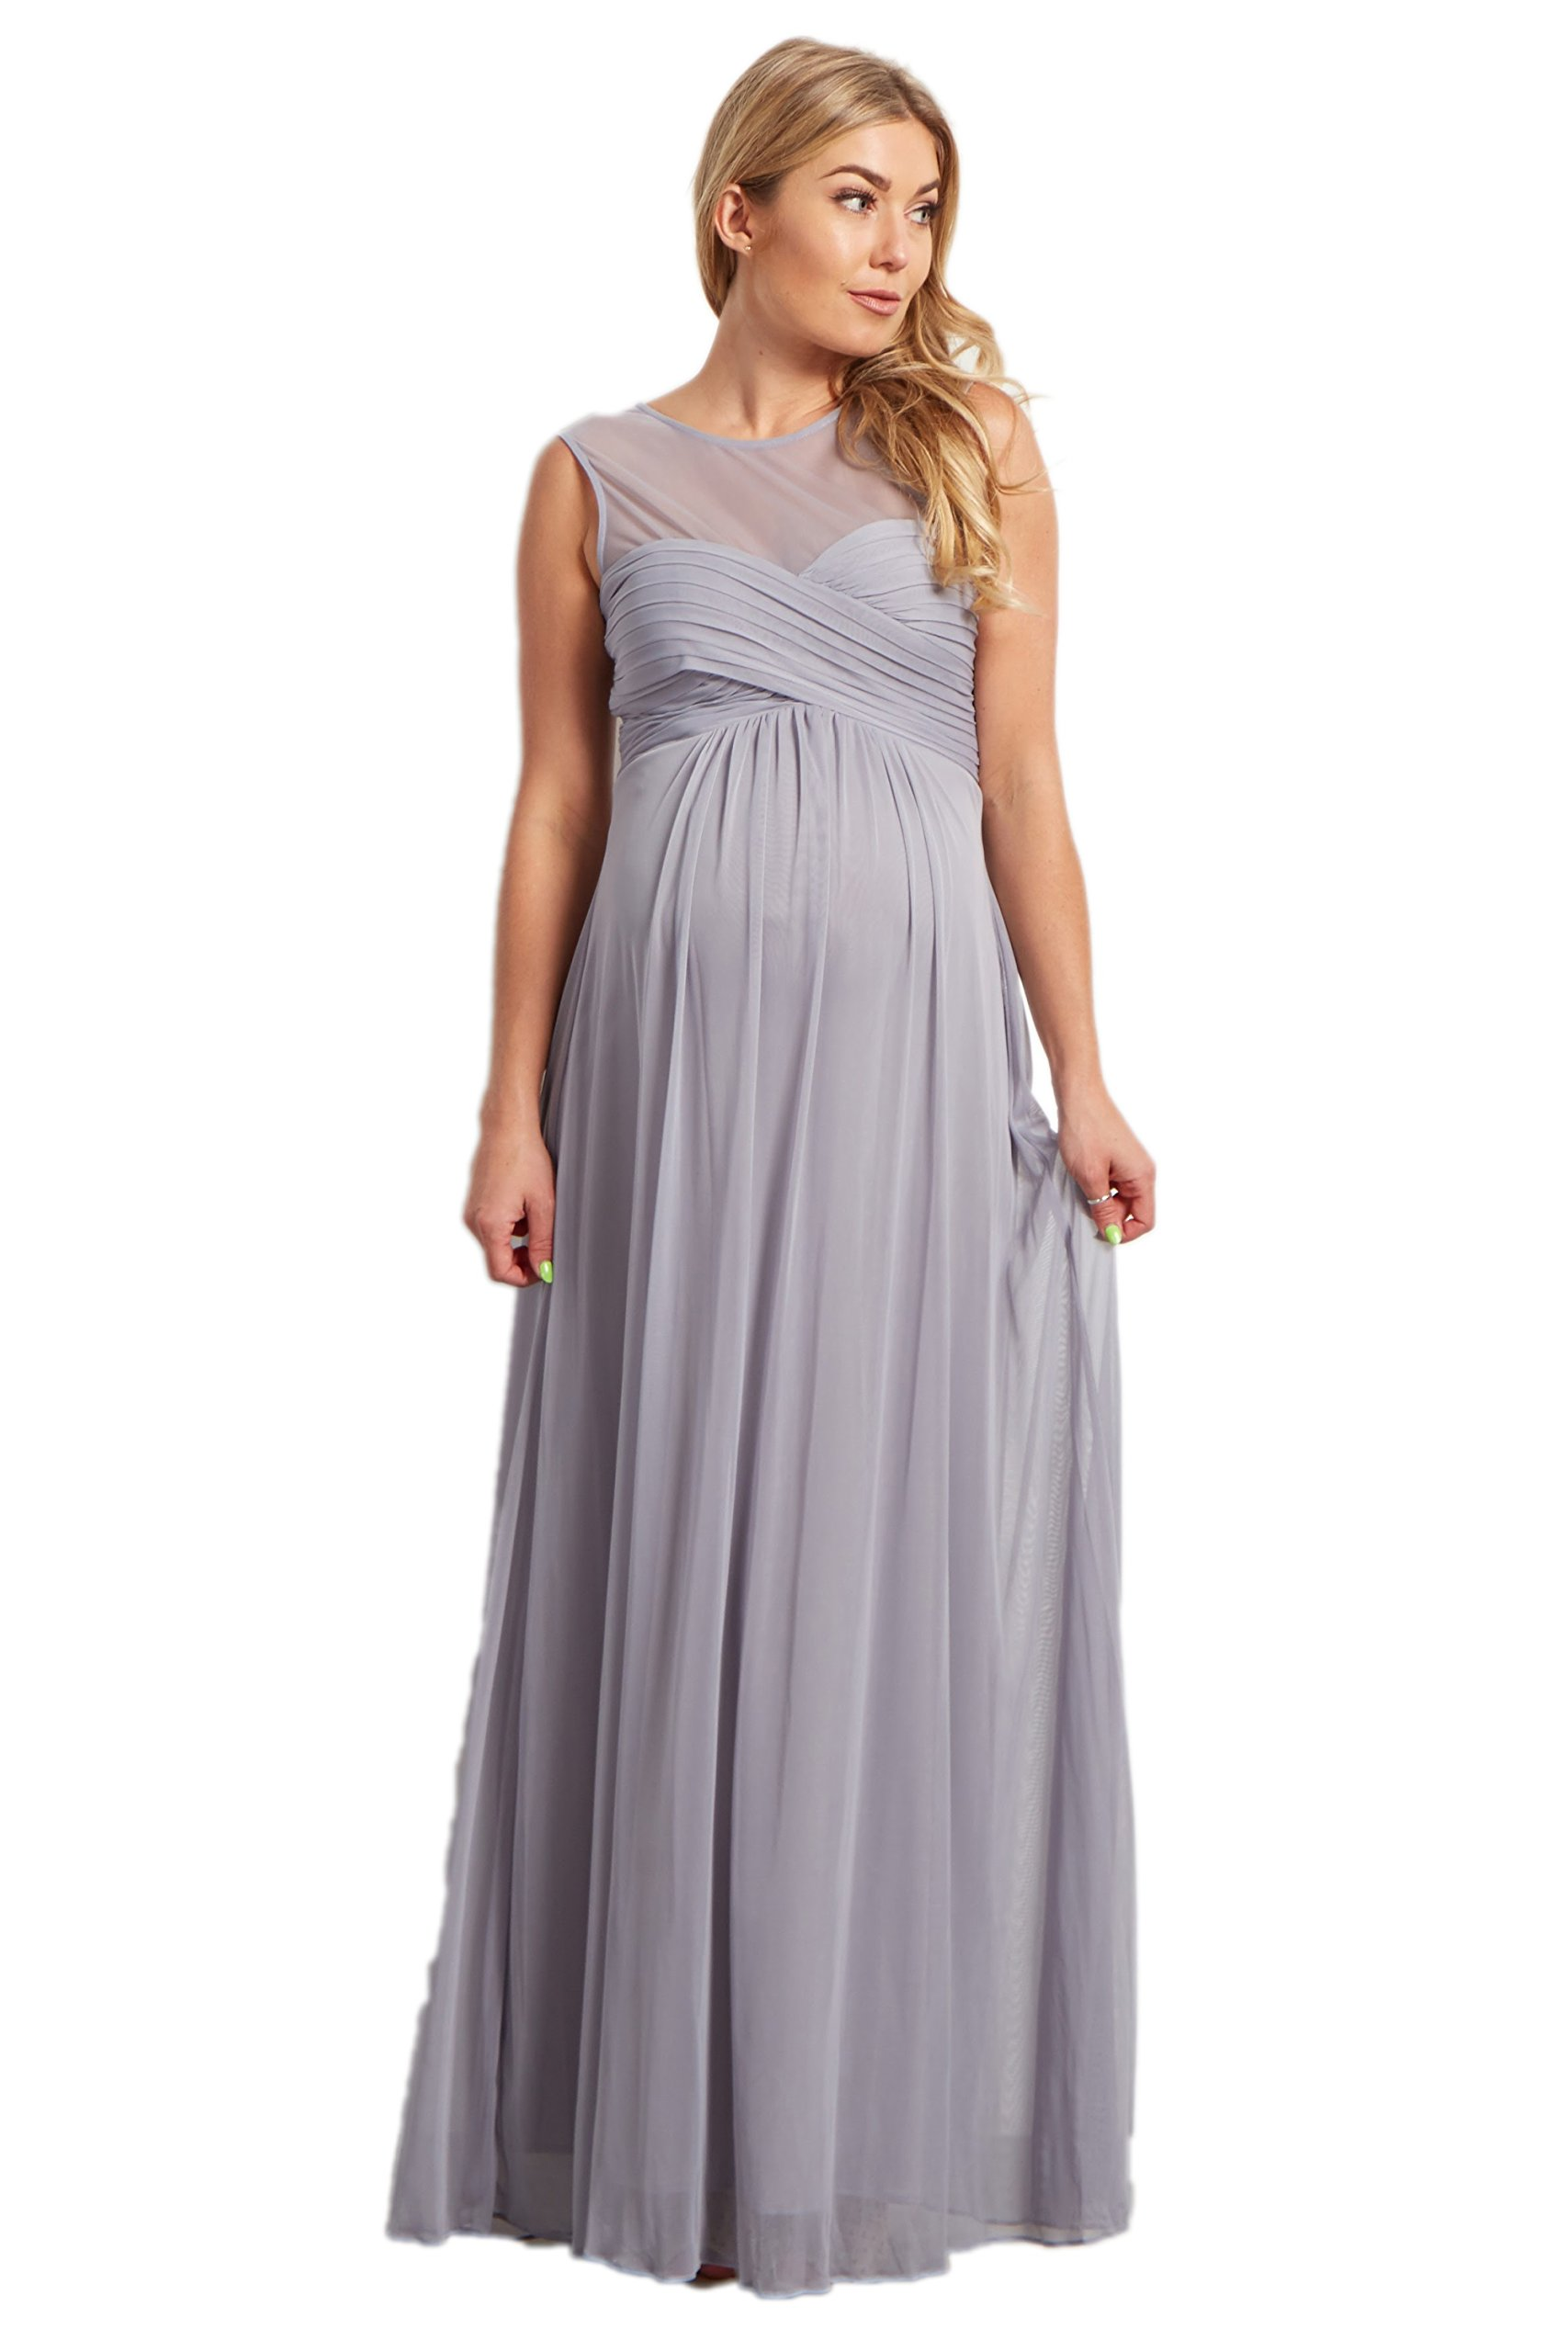 PinkBlush Maternity Grey Mesh Neckline Ruched Bust Maternity Evening Gown, XL